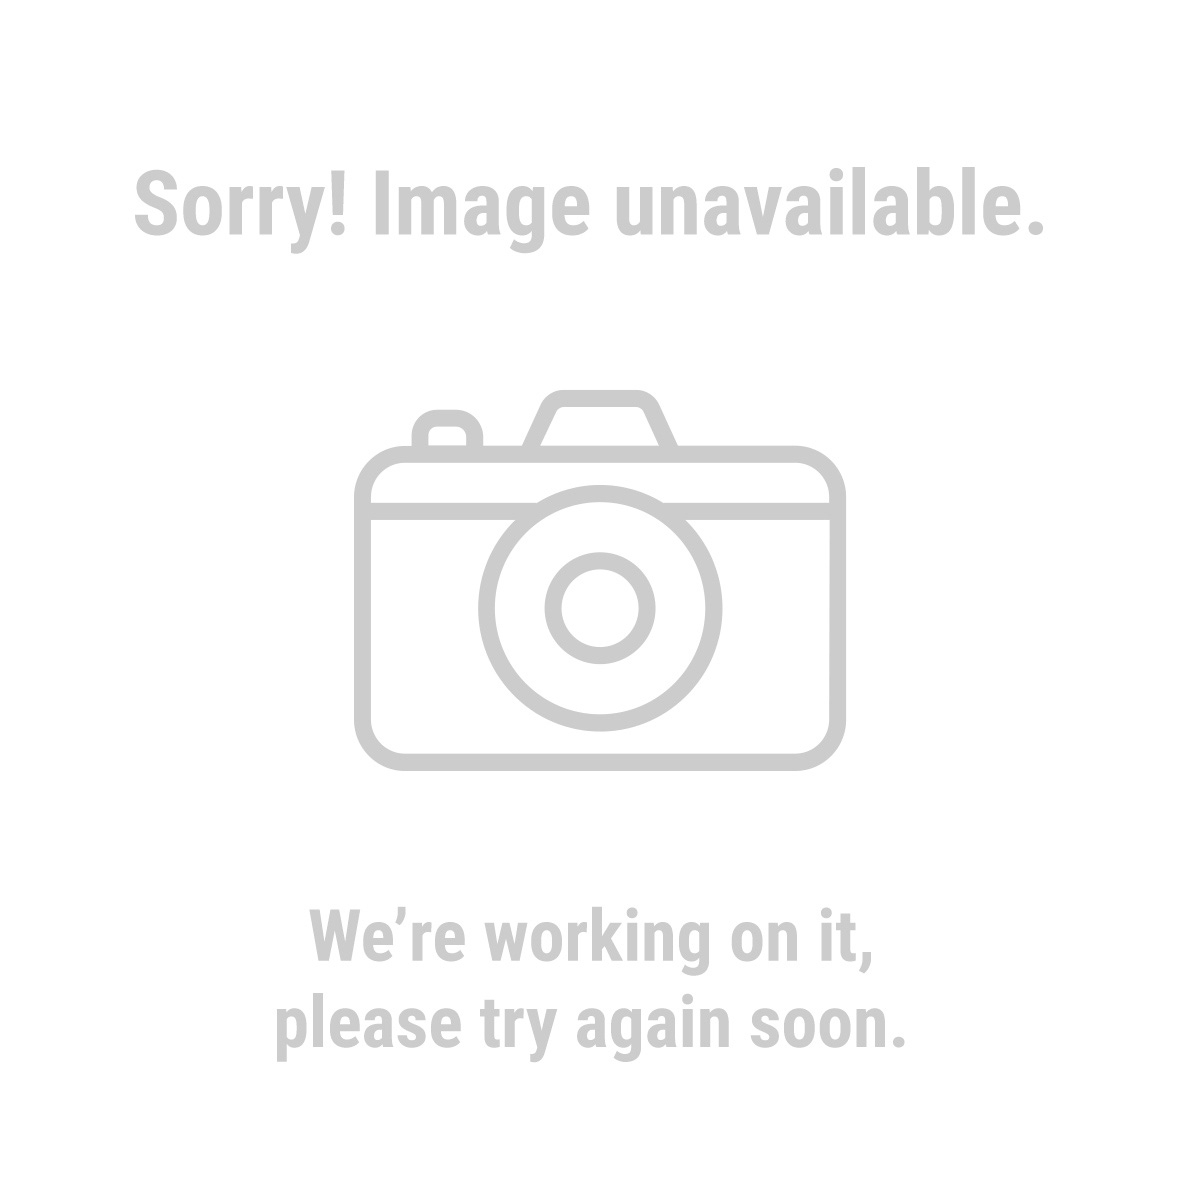 Pittsburgh 65167 3 Piece Pen Style Precision Screwdrivers